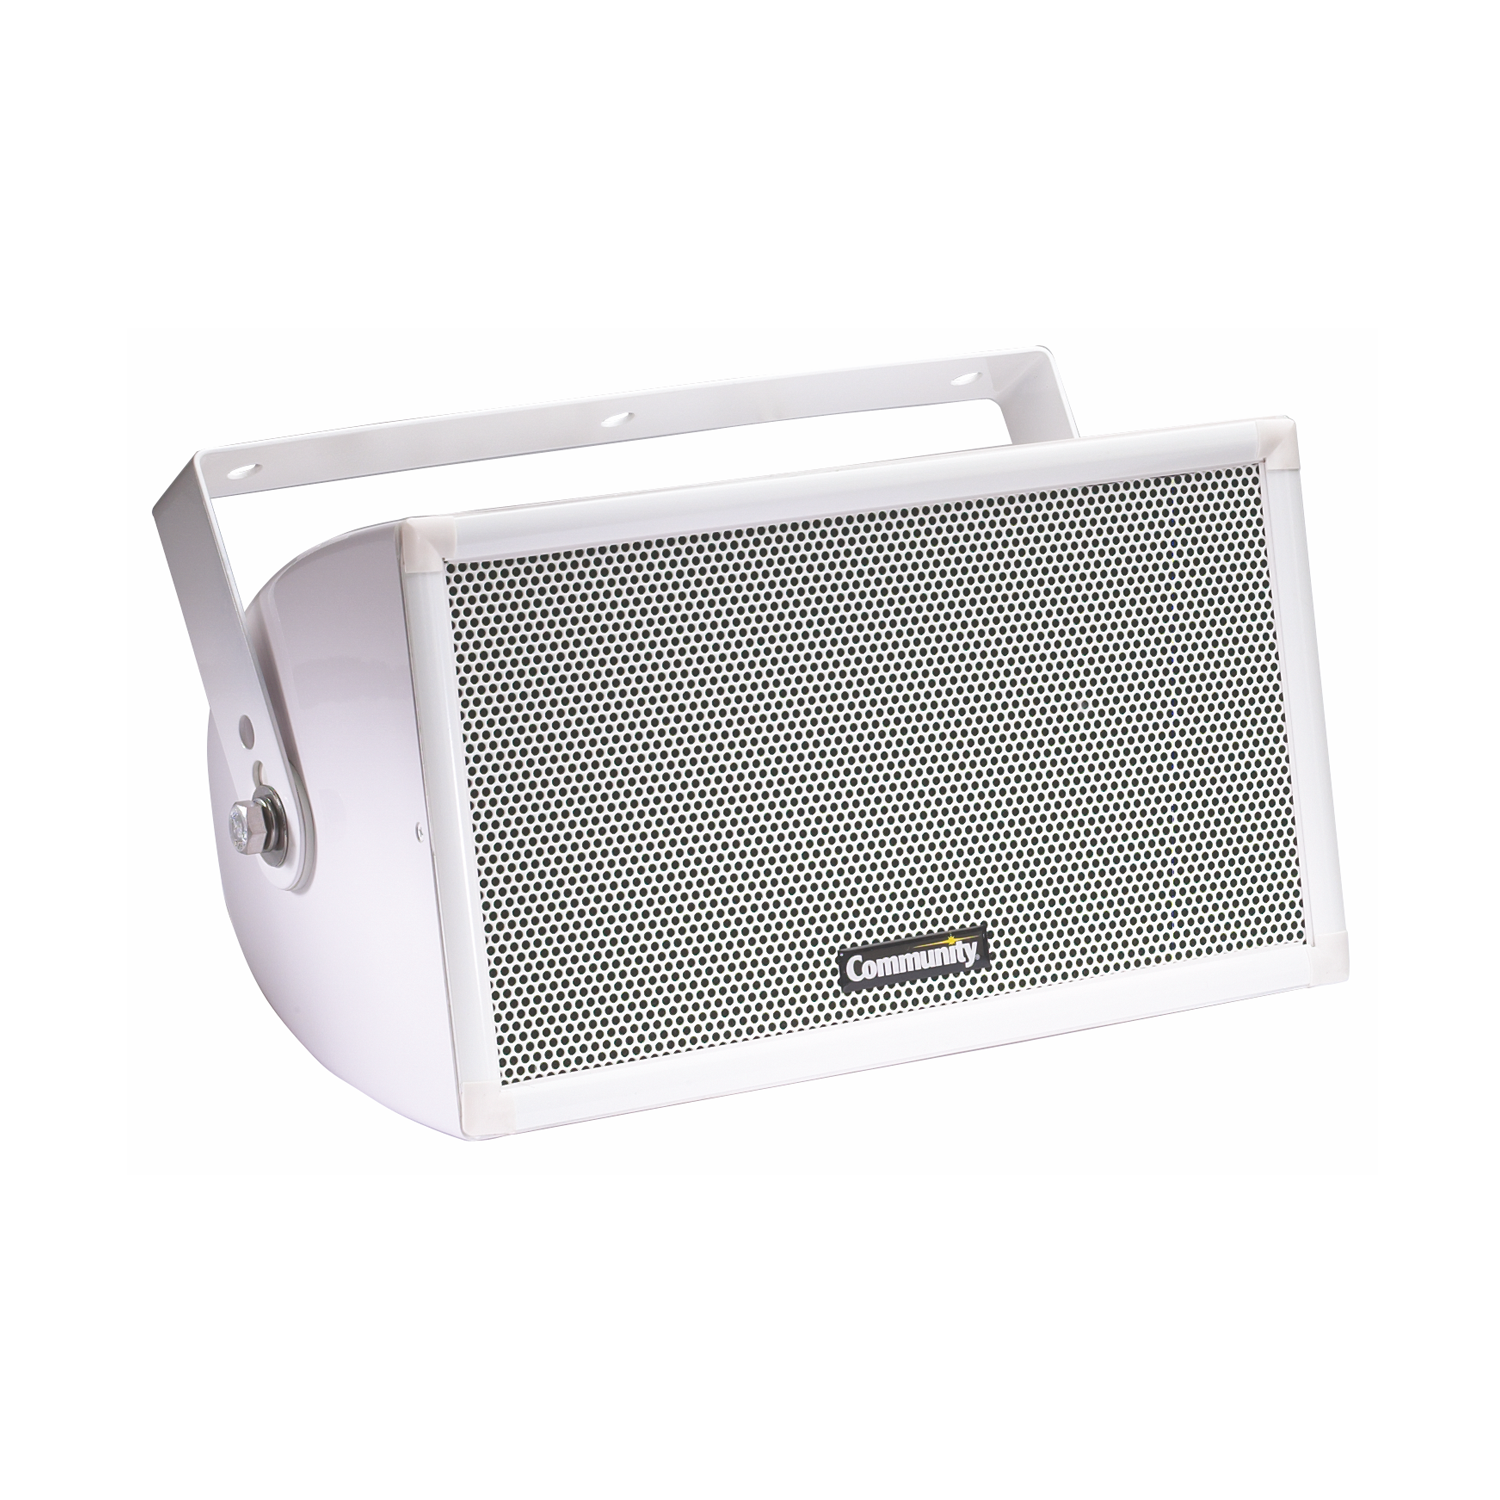 W2-218W White Compact Premium Music Solution 8-inch Compact Premium Performance Two-Way